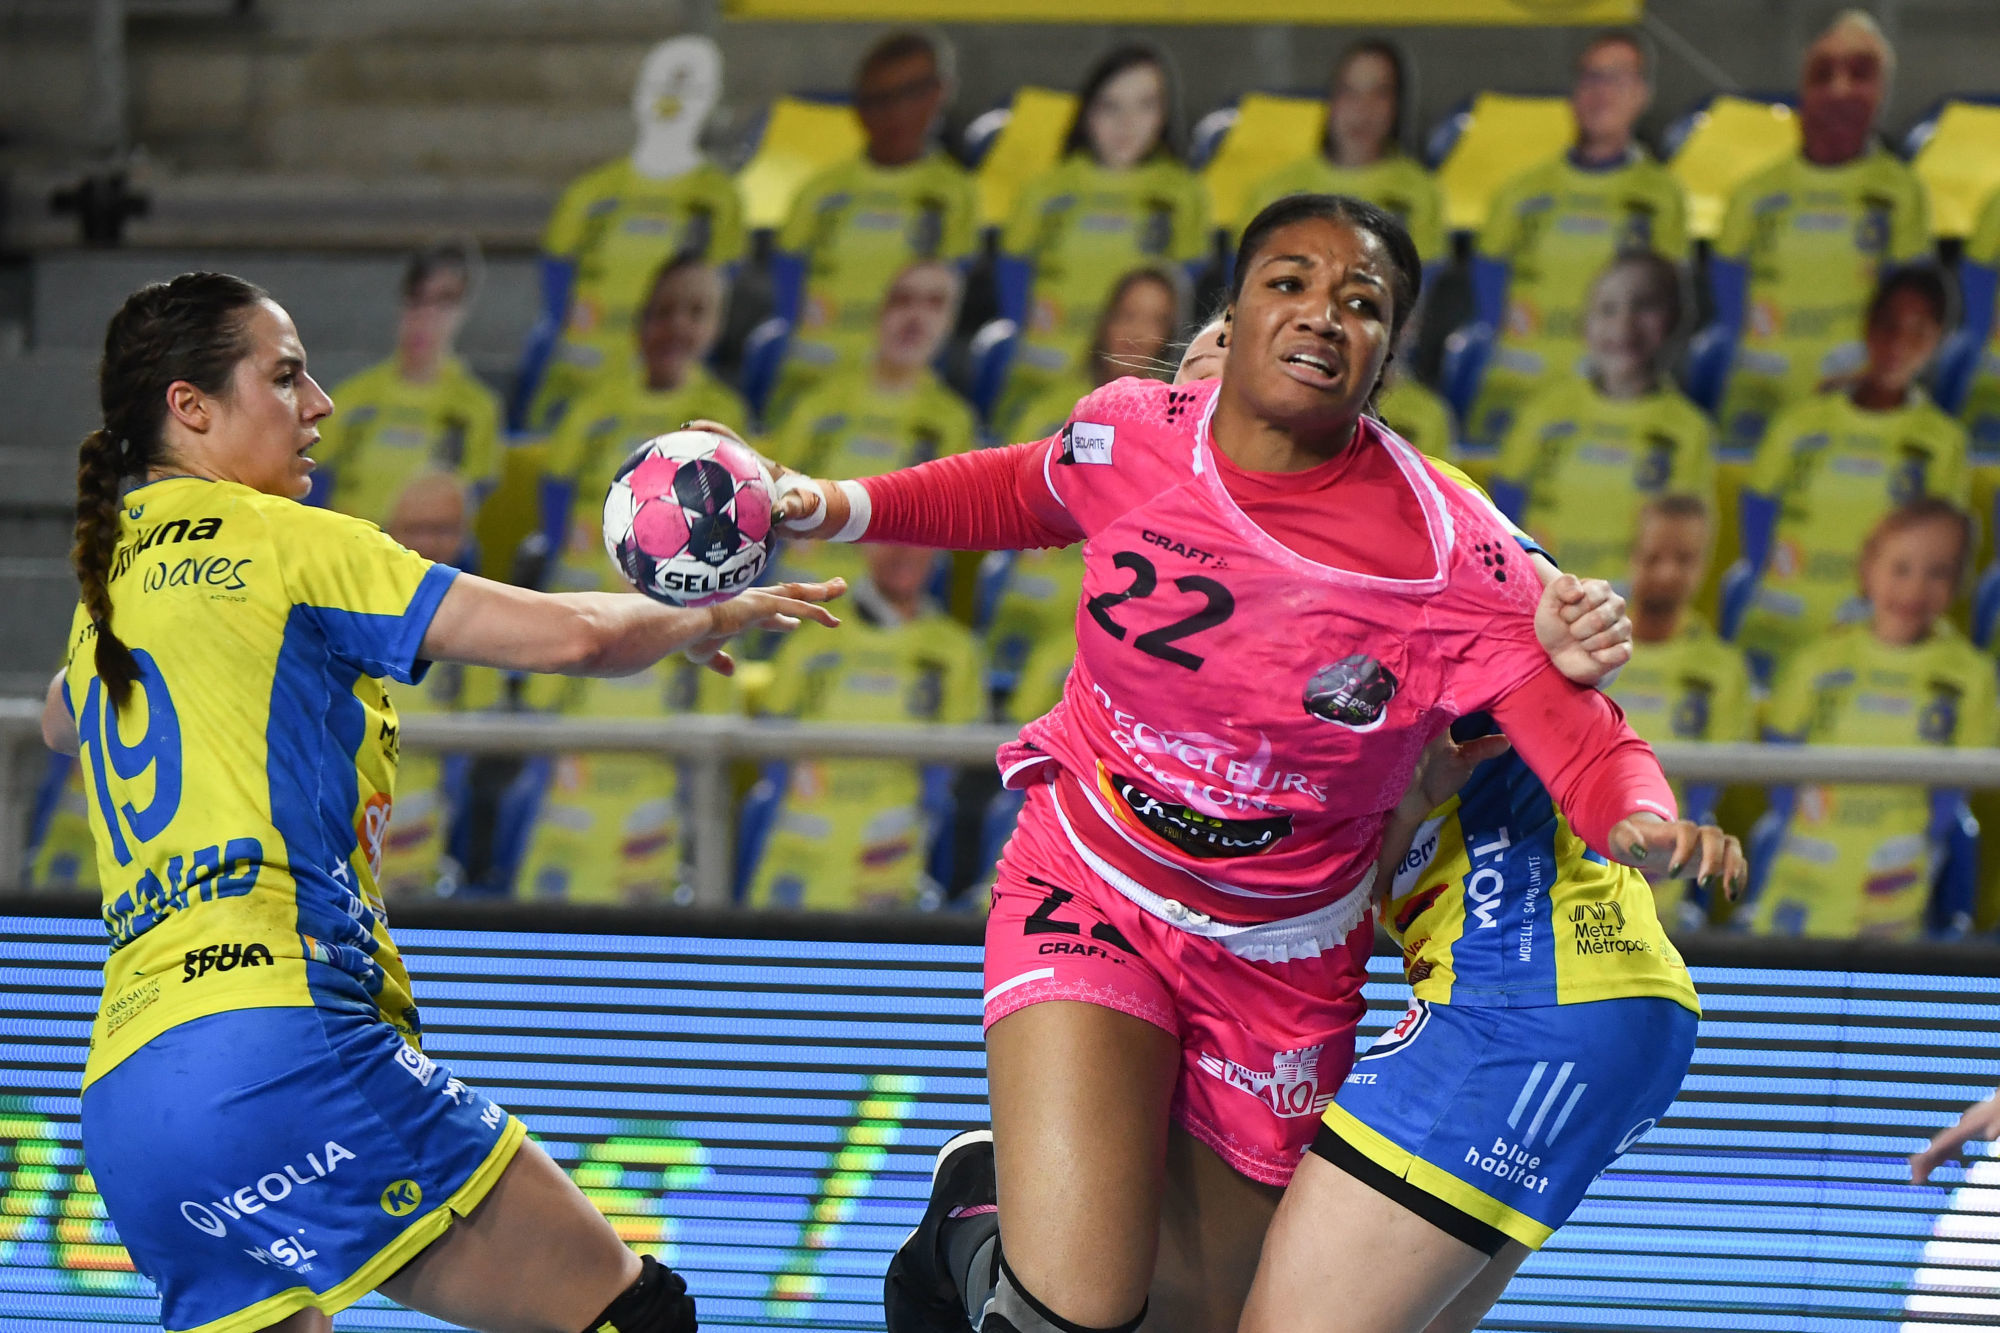 Pauletta FOPPA of Brest Handball during the DELO EHF Women's Champions match between Metz and Brest on April 10, 2021 in Metz, France. (Photo by Anthony Dibon/Icon Sport) - Pauletta FOPPA - Palais Omnisports Les Arenes Metz - Metz (France)